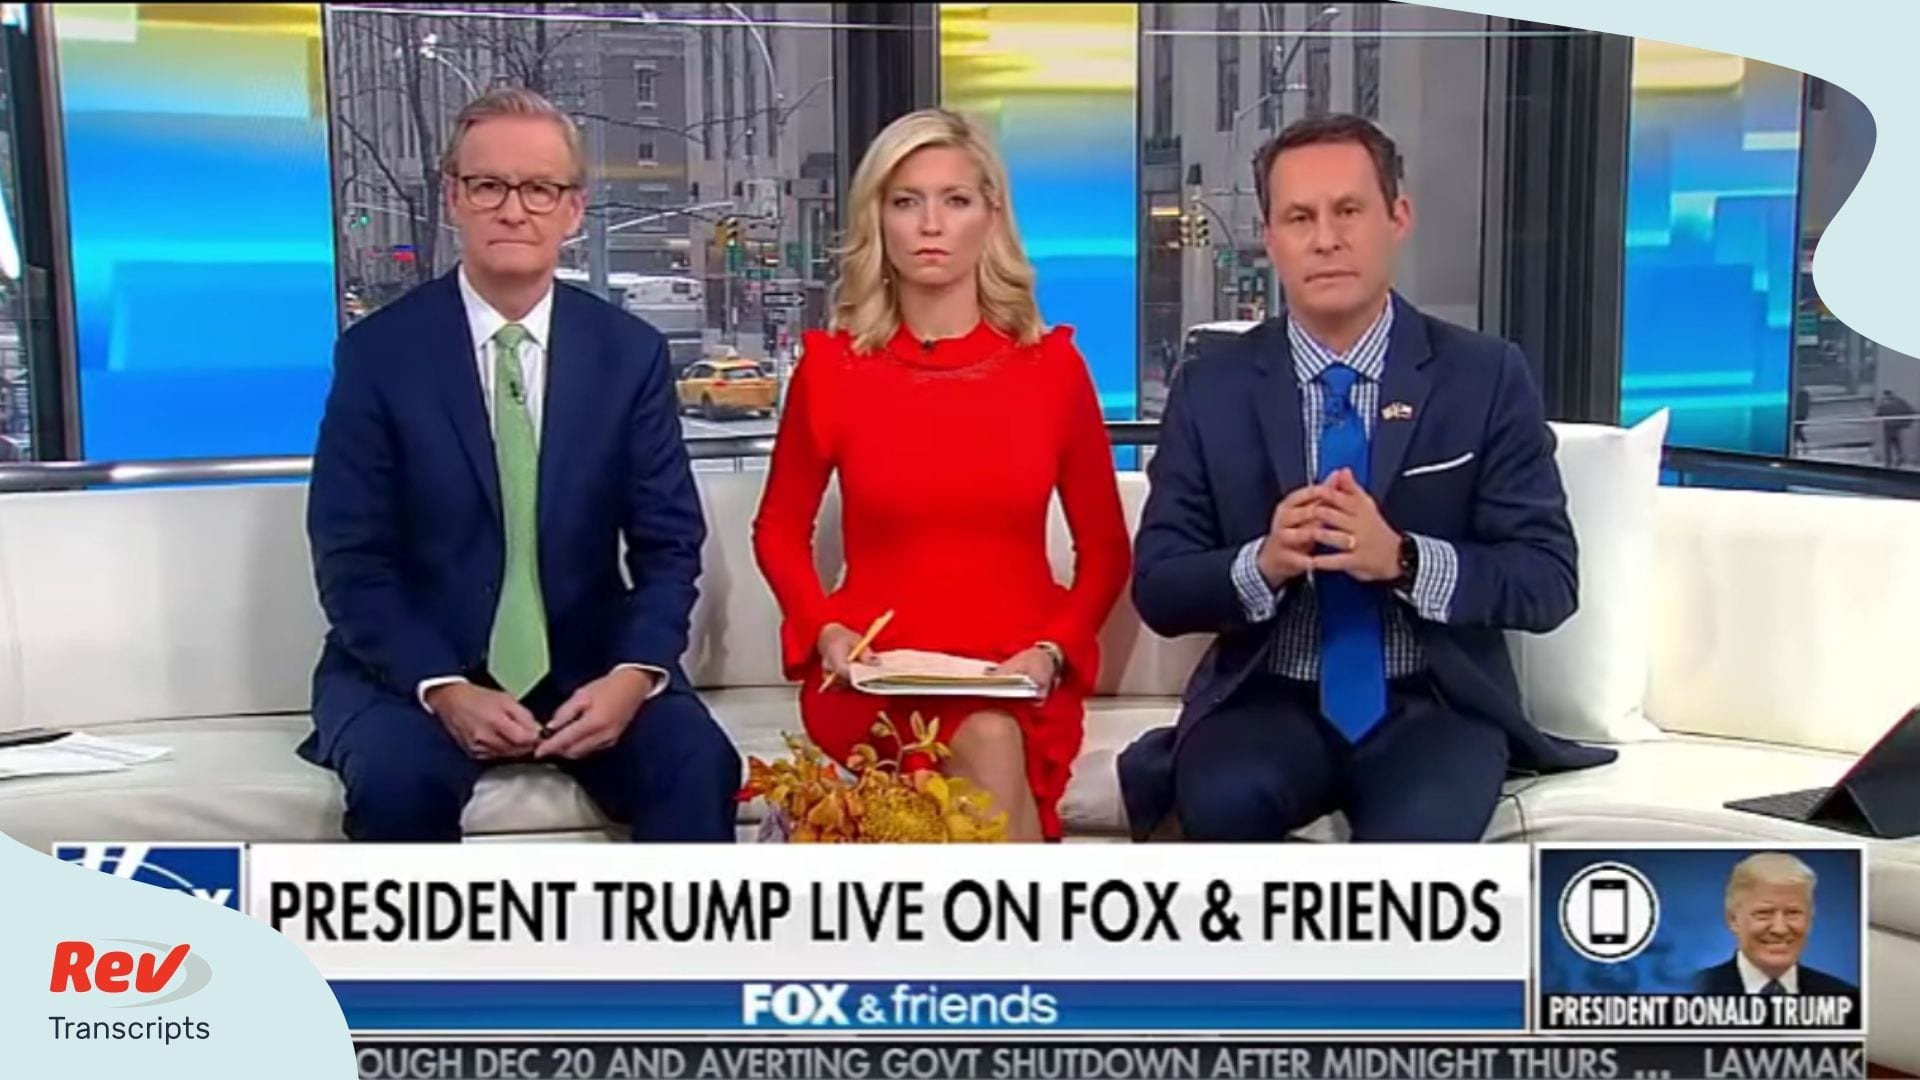 Donald Trump Fox and Friends Interview Transcript